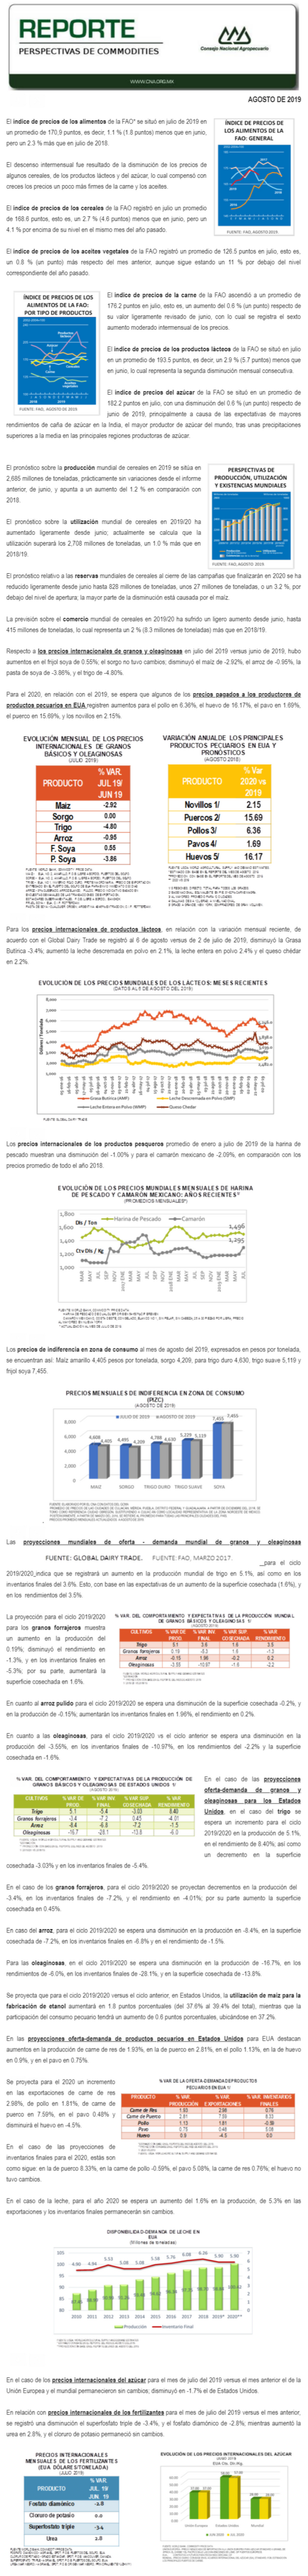 REPORTE DE PERSPECTIVAS DE COMMODITIES DEL MES DE AGOSTO DE 2019